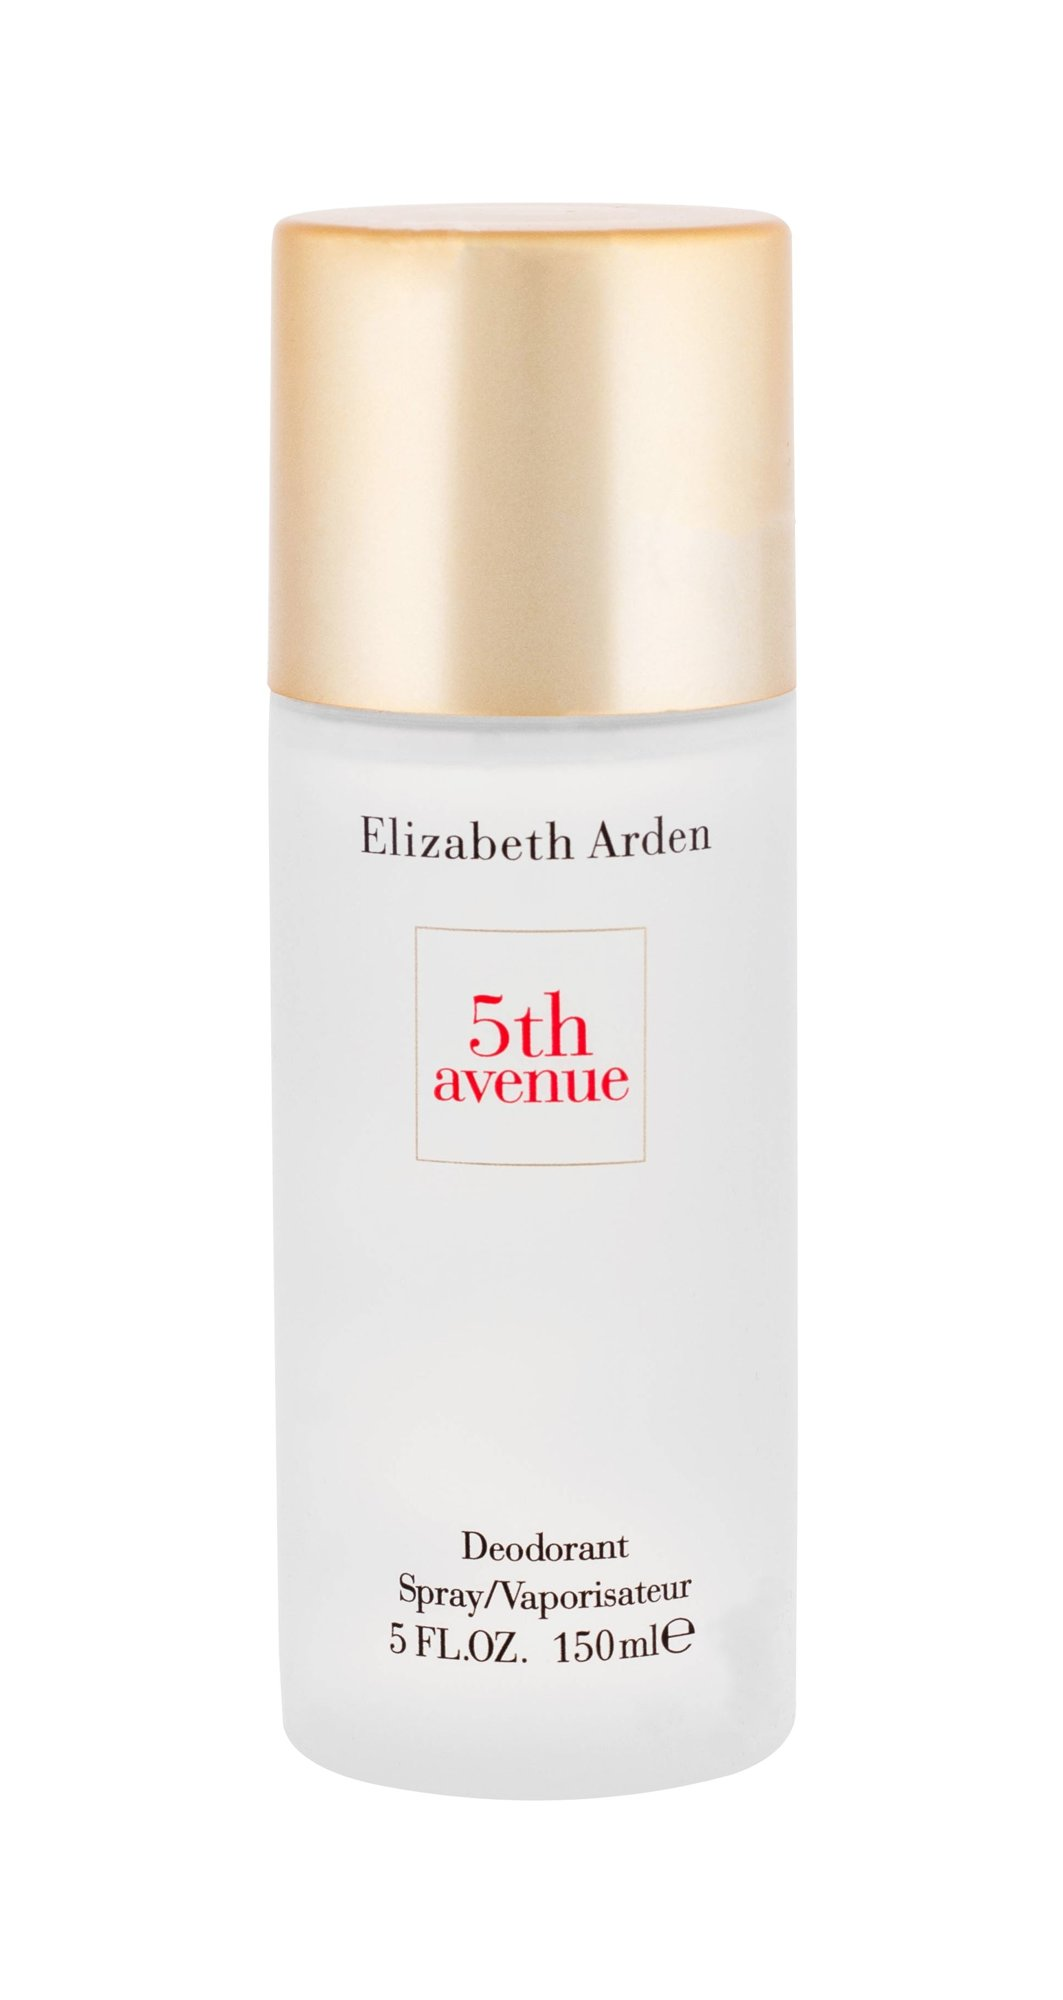 Elizabeth Arden 5th Avenue Deodorant 150ml